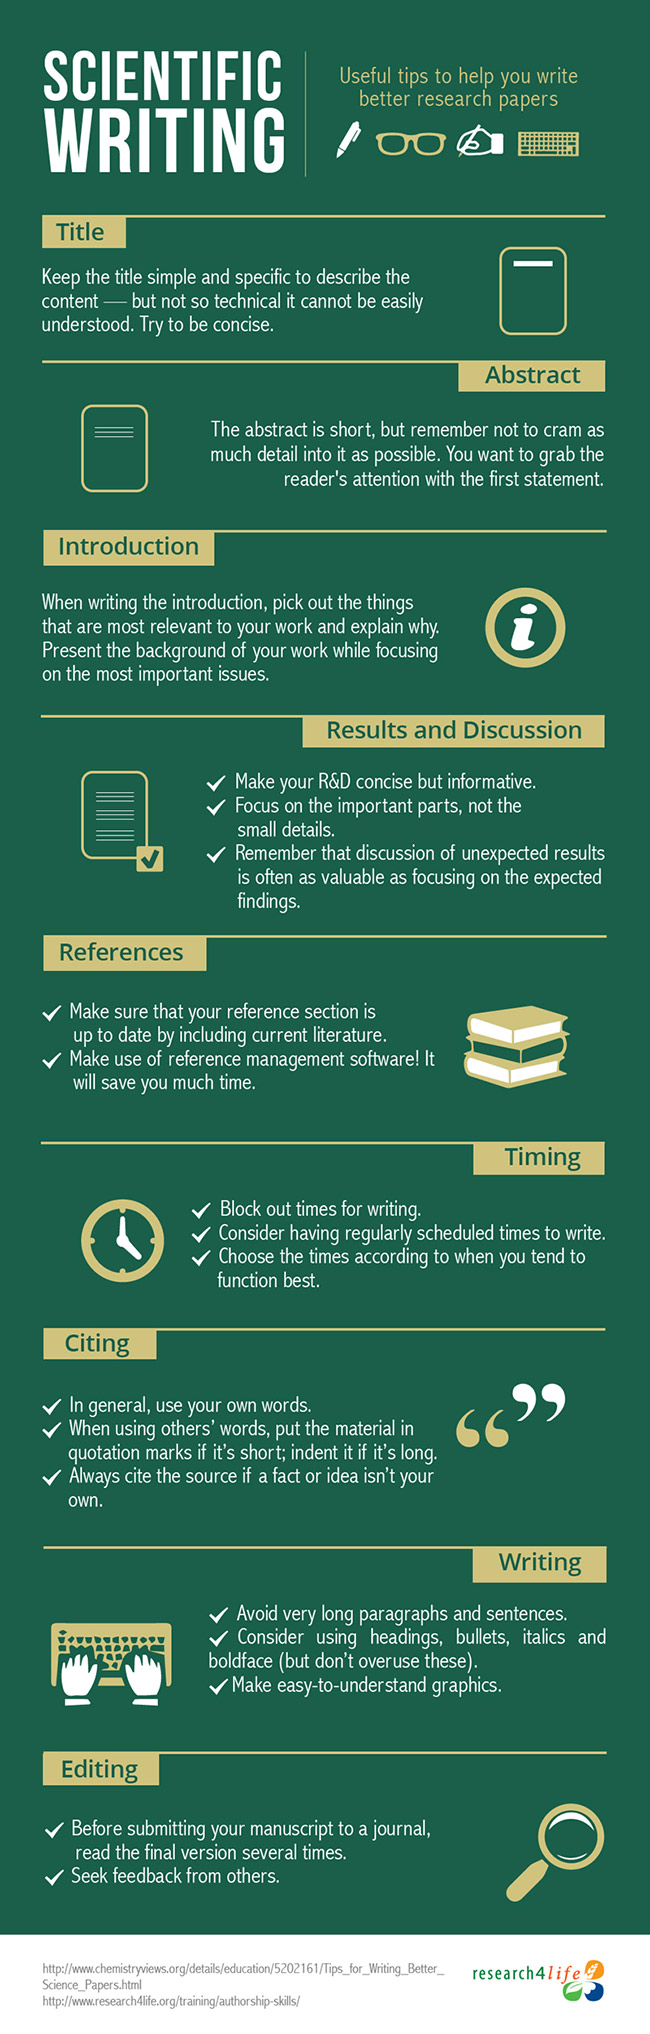 Book Banning Essay  For Abortion Essay also Pop Music Essay Infographic How To Write Better Science Papers Espository Essay